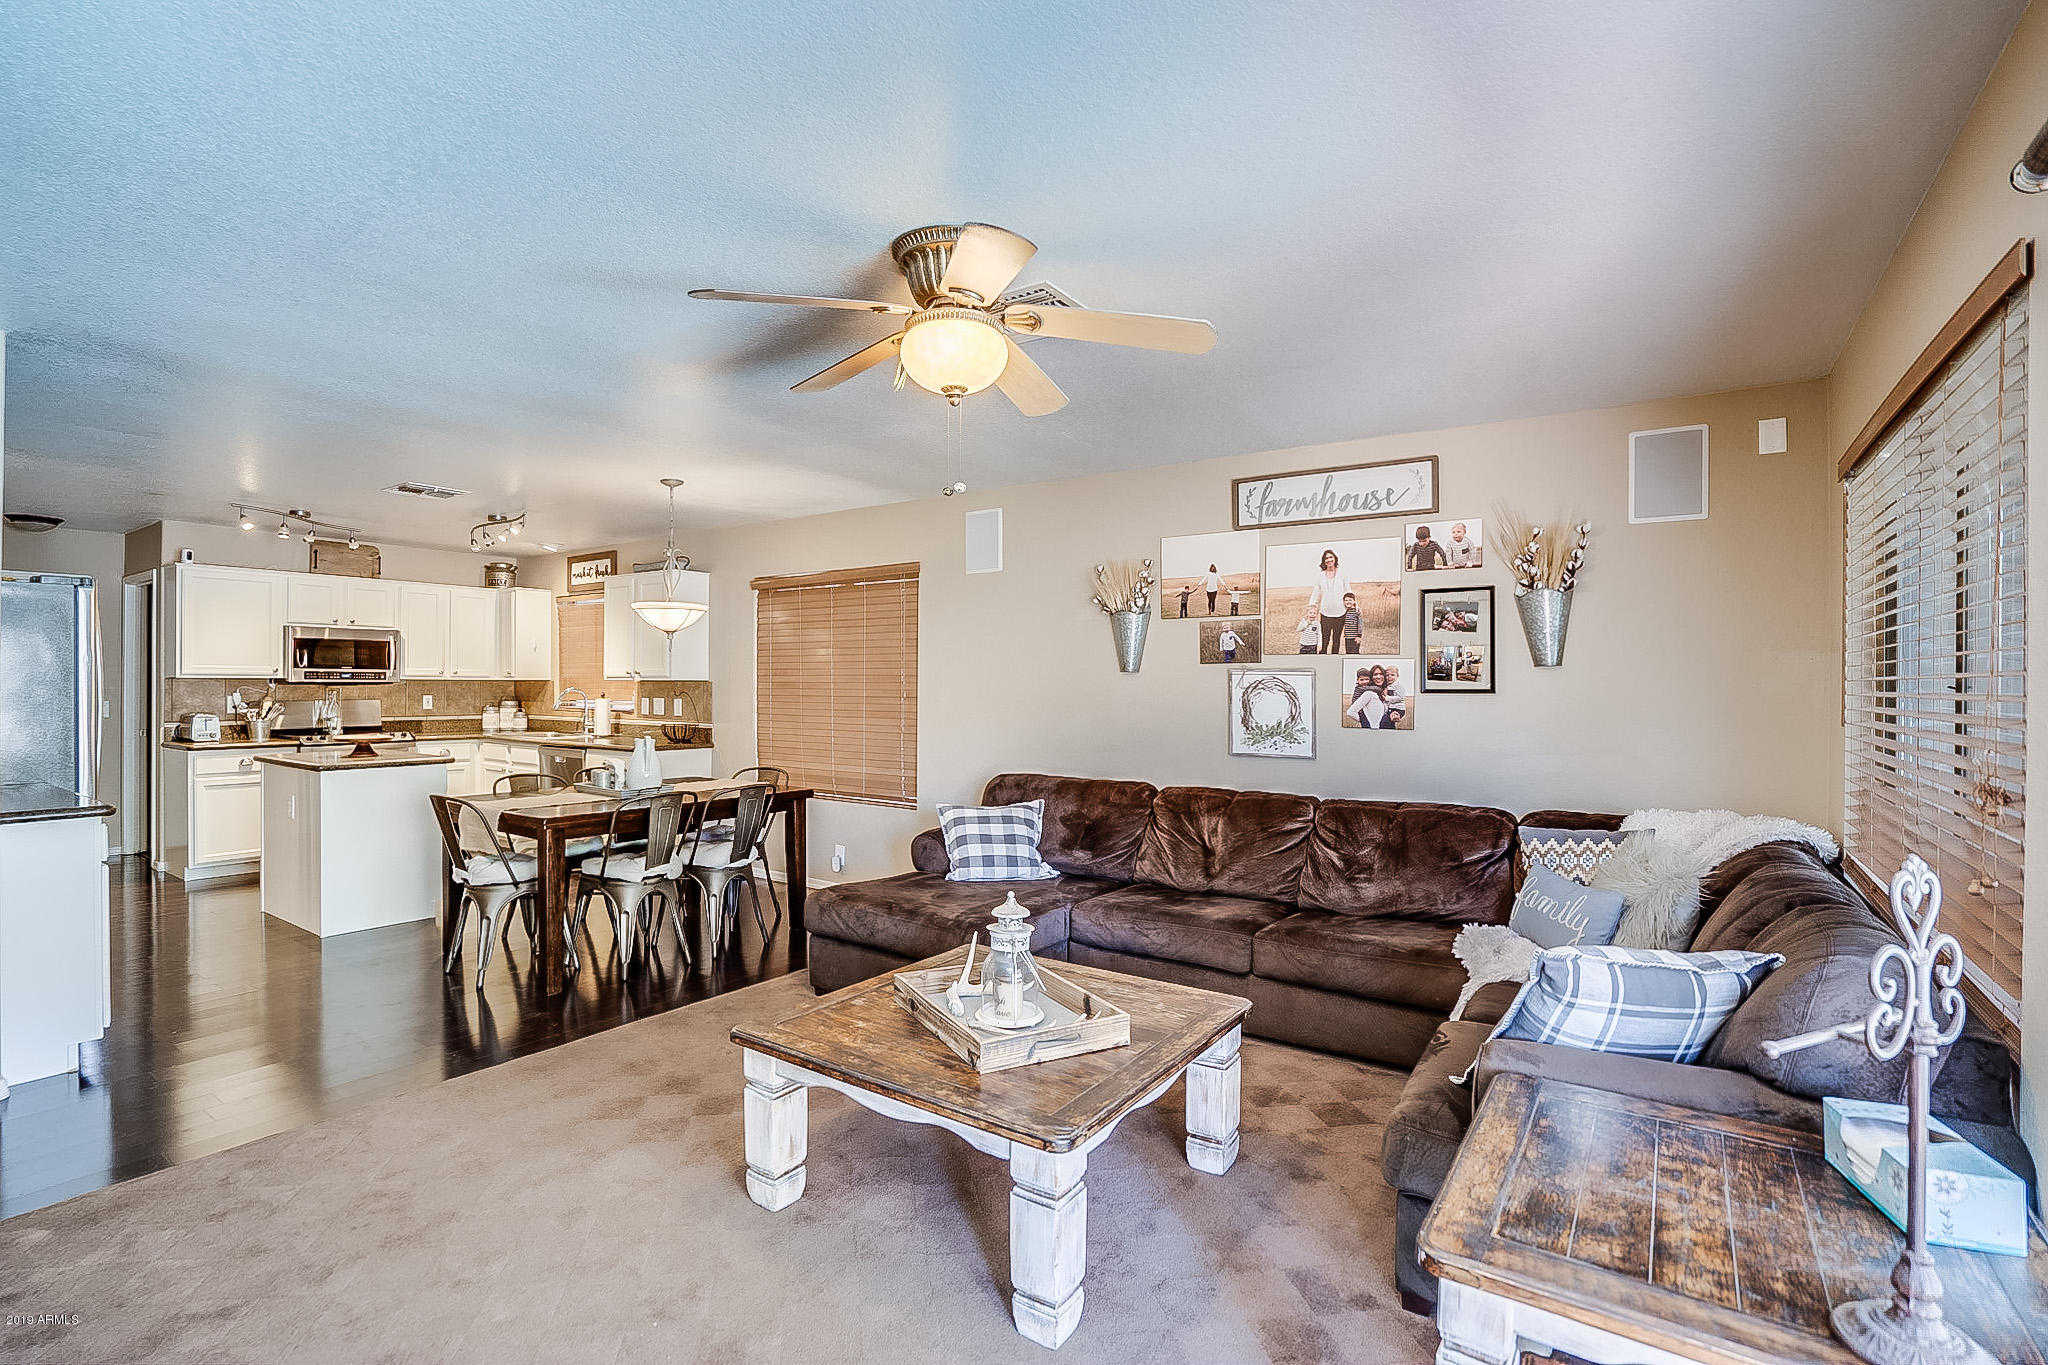 $349,900 - 5Br/3Ba - Home for Sale in Touchstone, Glendale